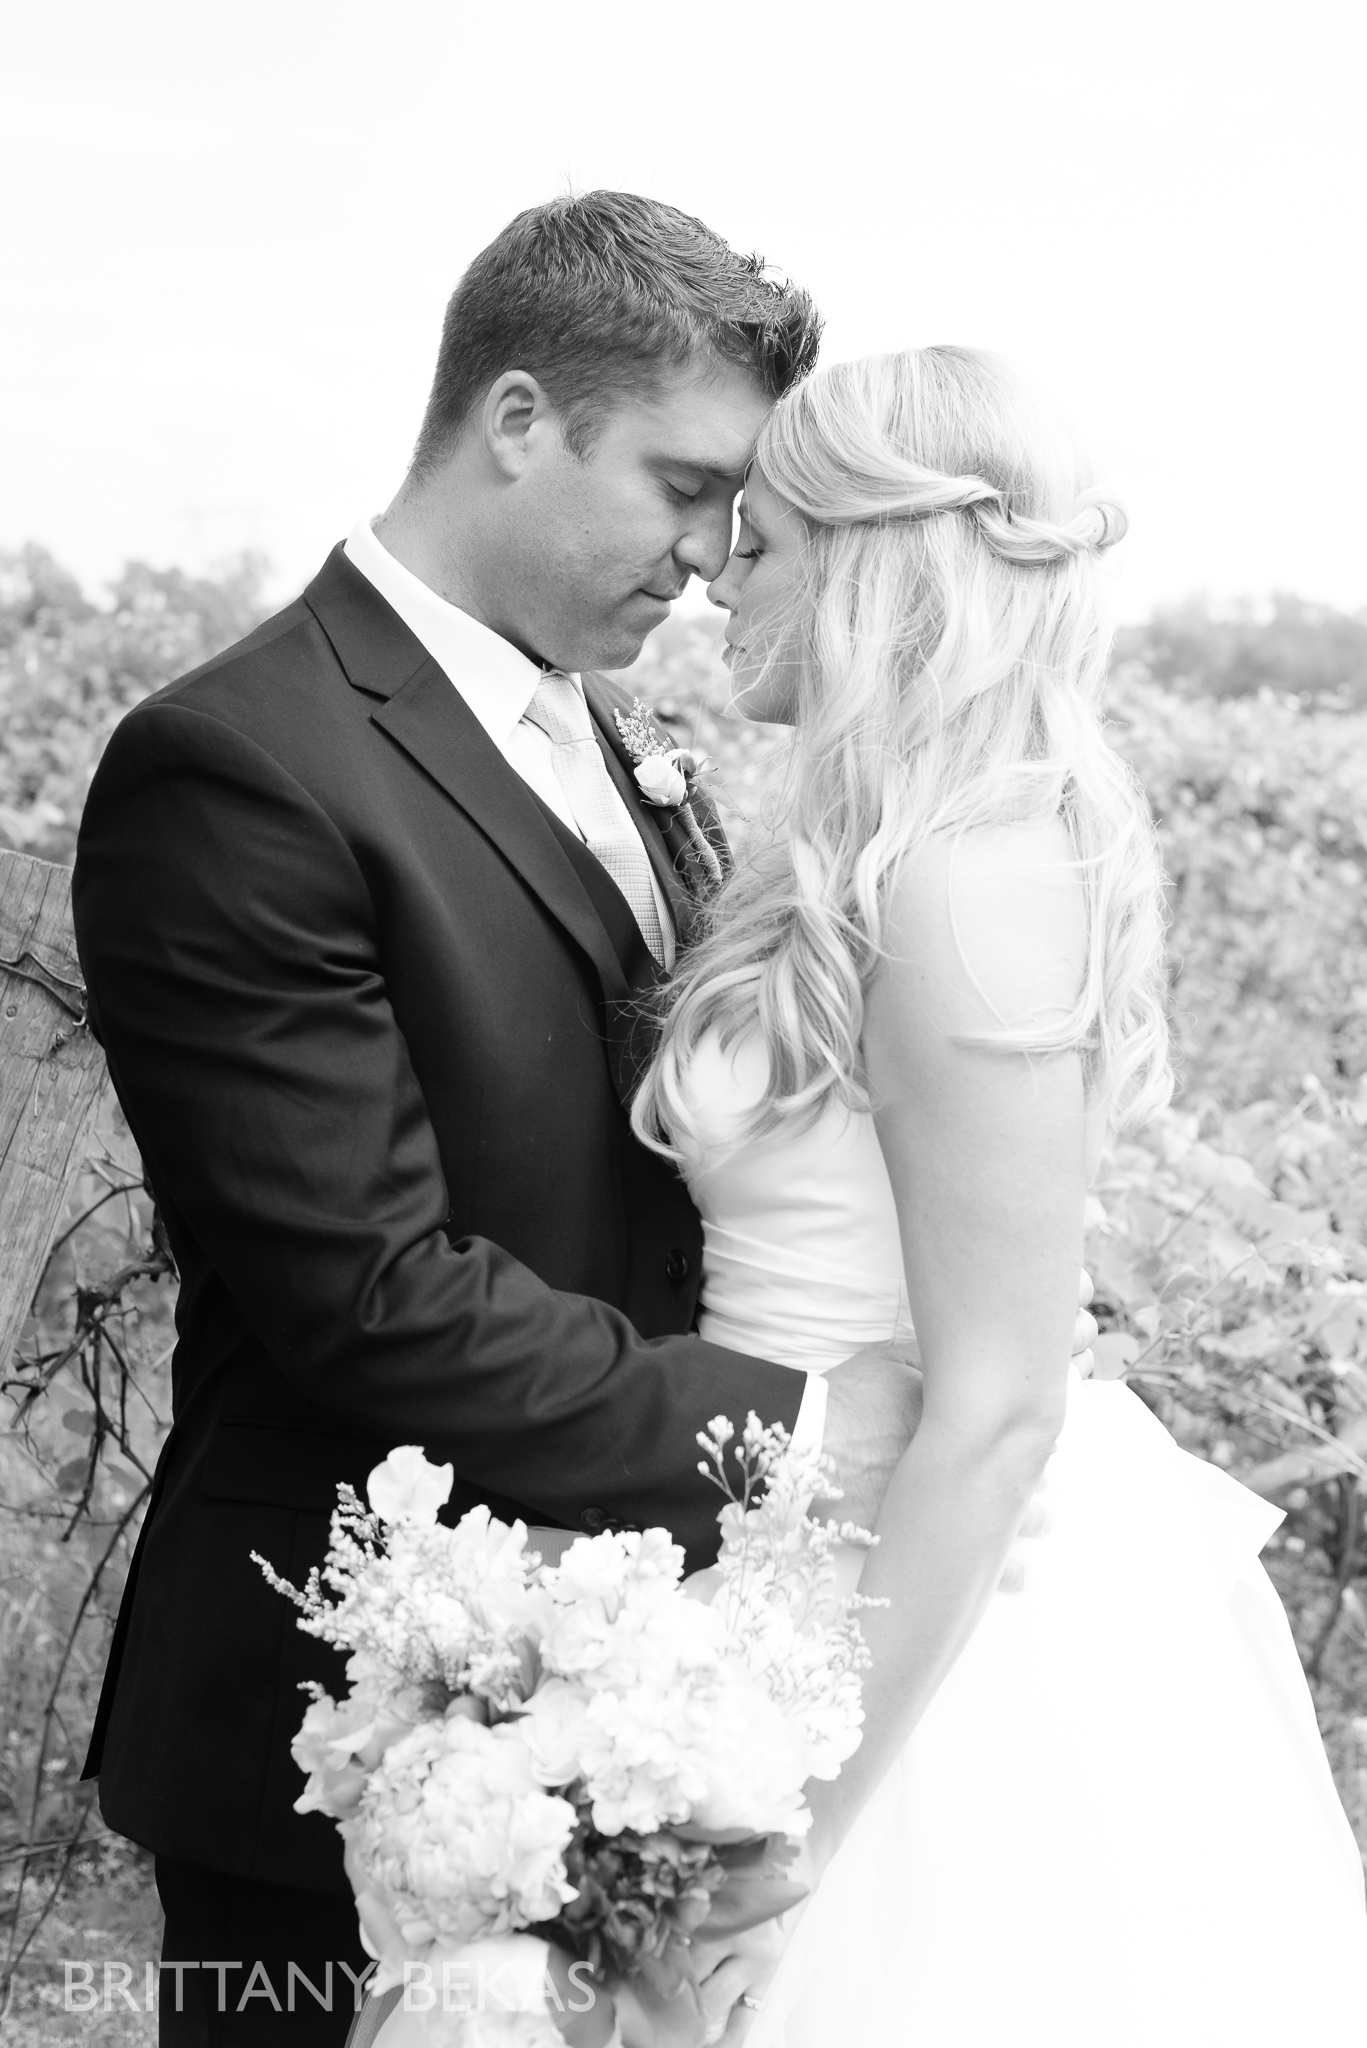 New Buffalo Wedding - Willow Harbor Vineyards Wedding Photos - Brittany Bekas Photography_0031